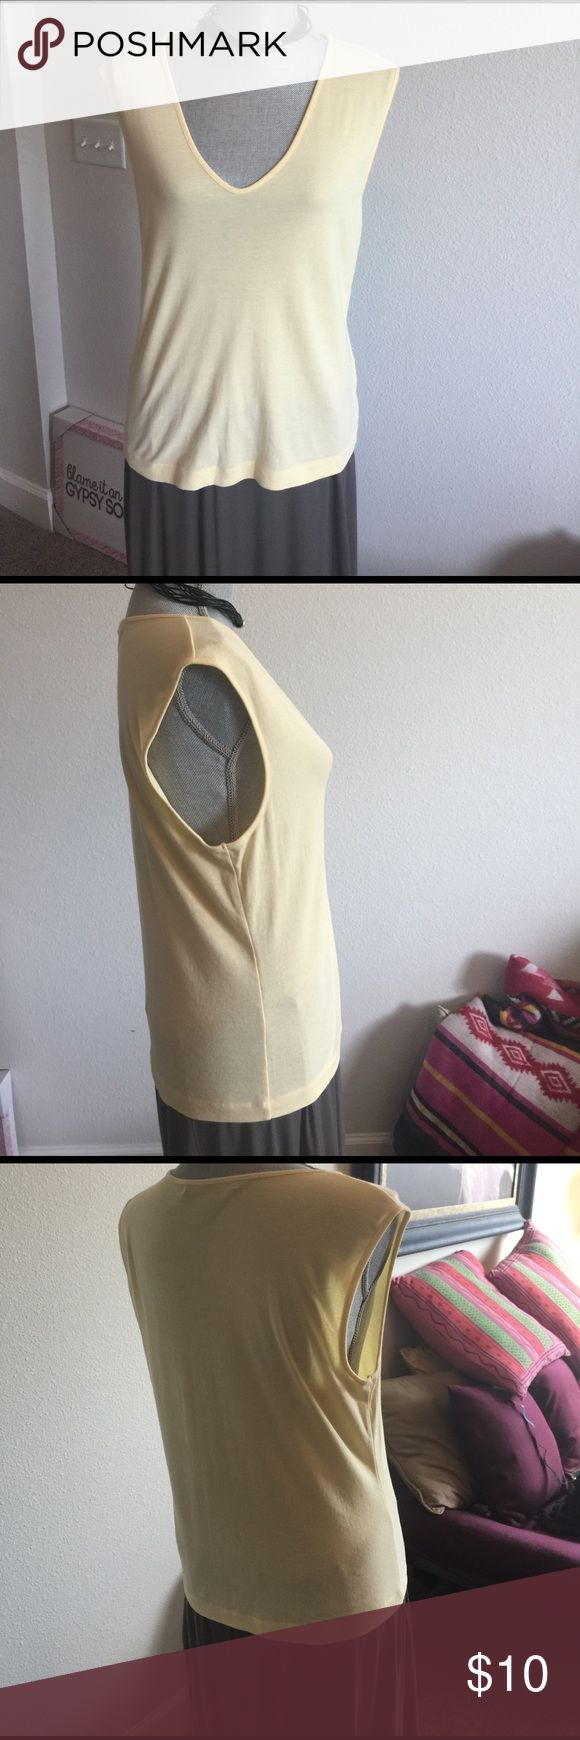 Ellen Tracy yellow tank top EUC Ellen Tracy yellow v neck tank top Ellen Tracy Tops Tank Tops